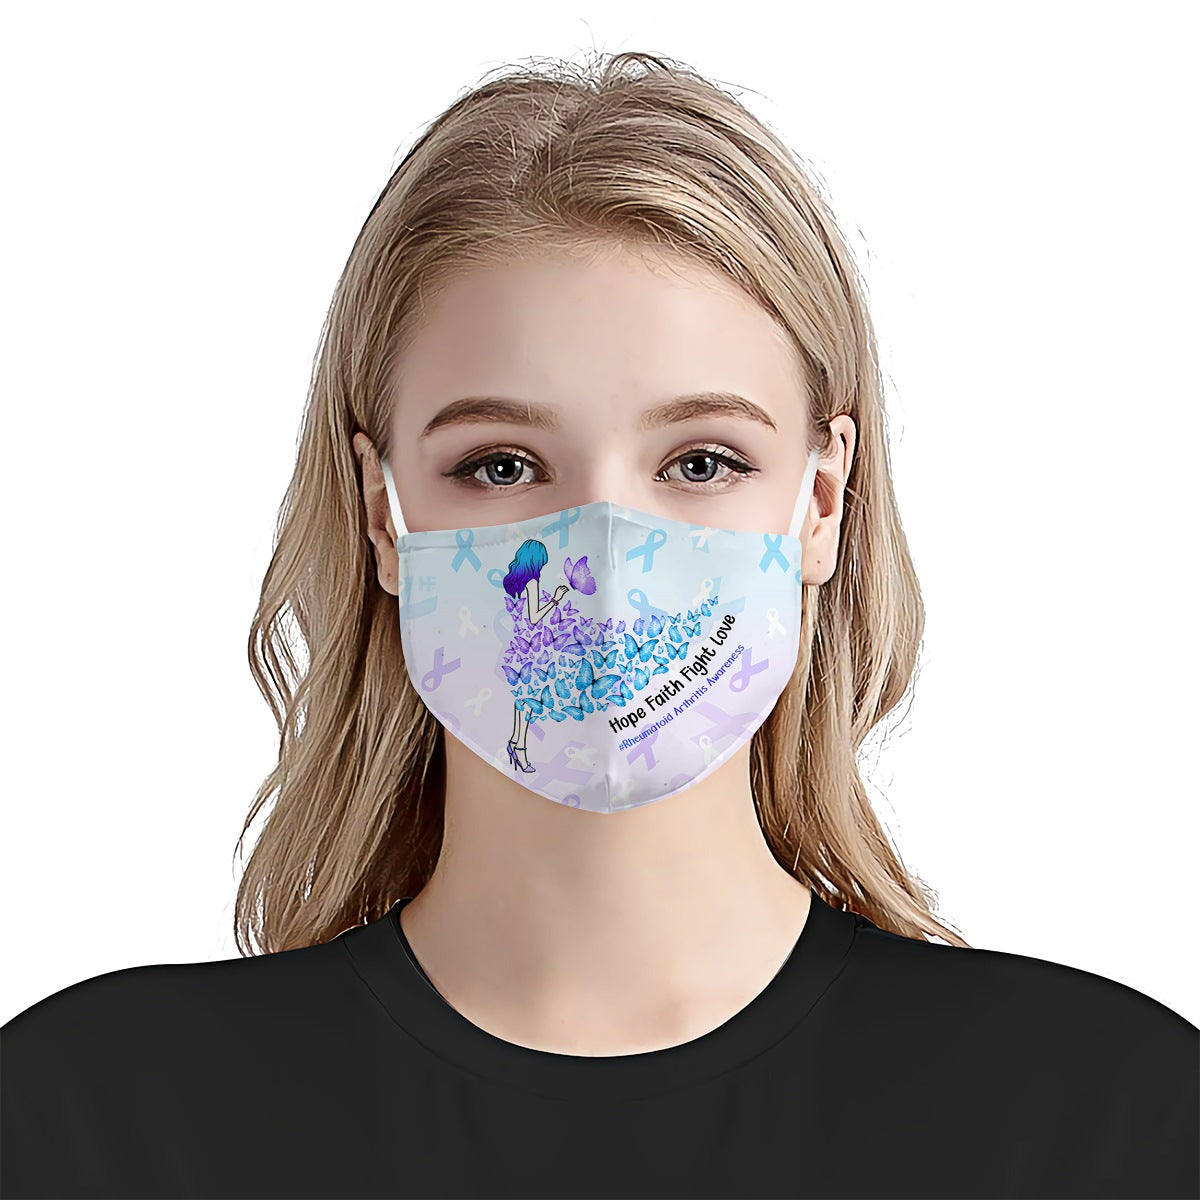 Rheumatoid Arthritis Awareness Girl In Buffterfly Dress EZ01 2704 Face Mask - Hyperfavor